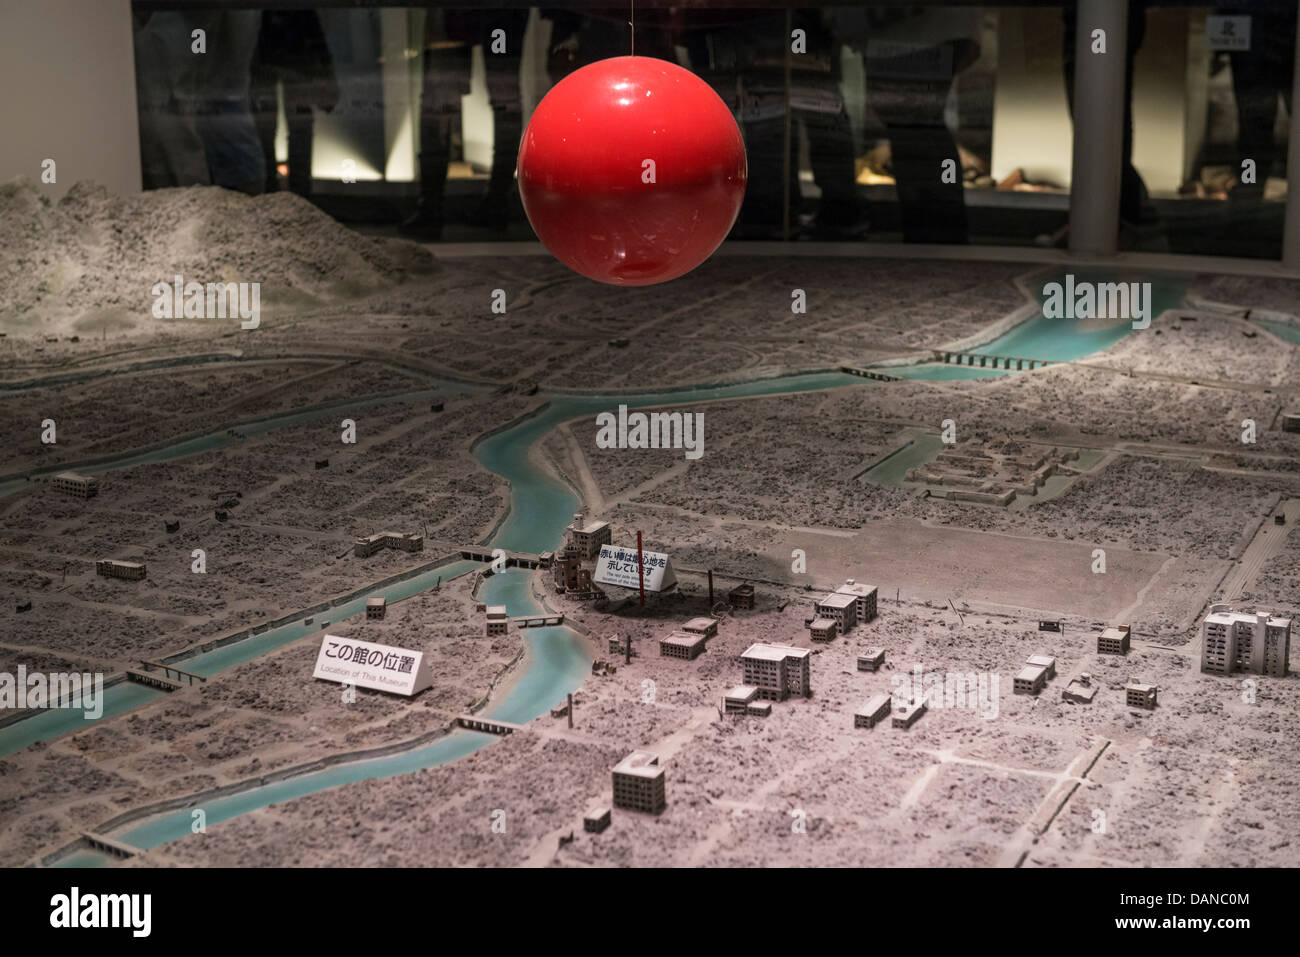 Map of Hiroshima after the Nuclear Explosion in Hiroshima Peace Memorial Museum. The Red Ball Depicts the Hypocenter, - Stock Image